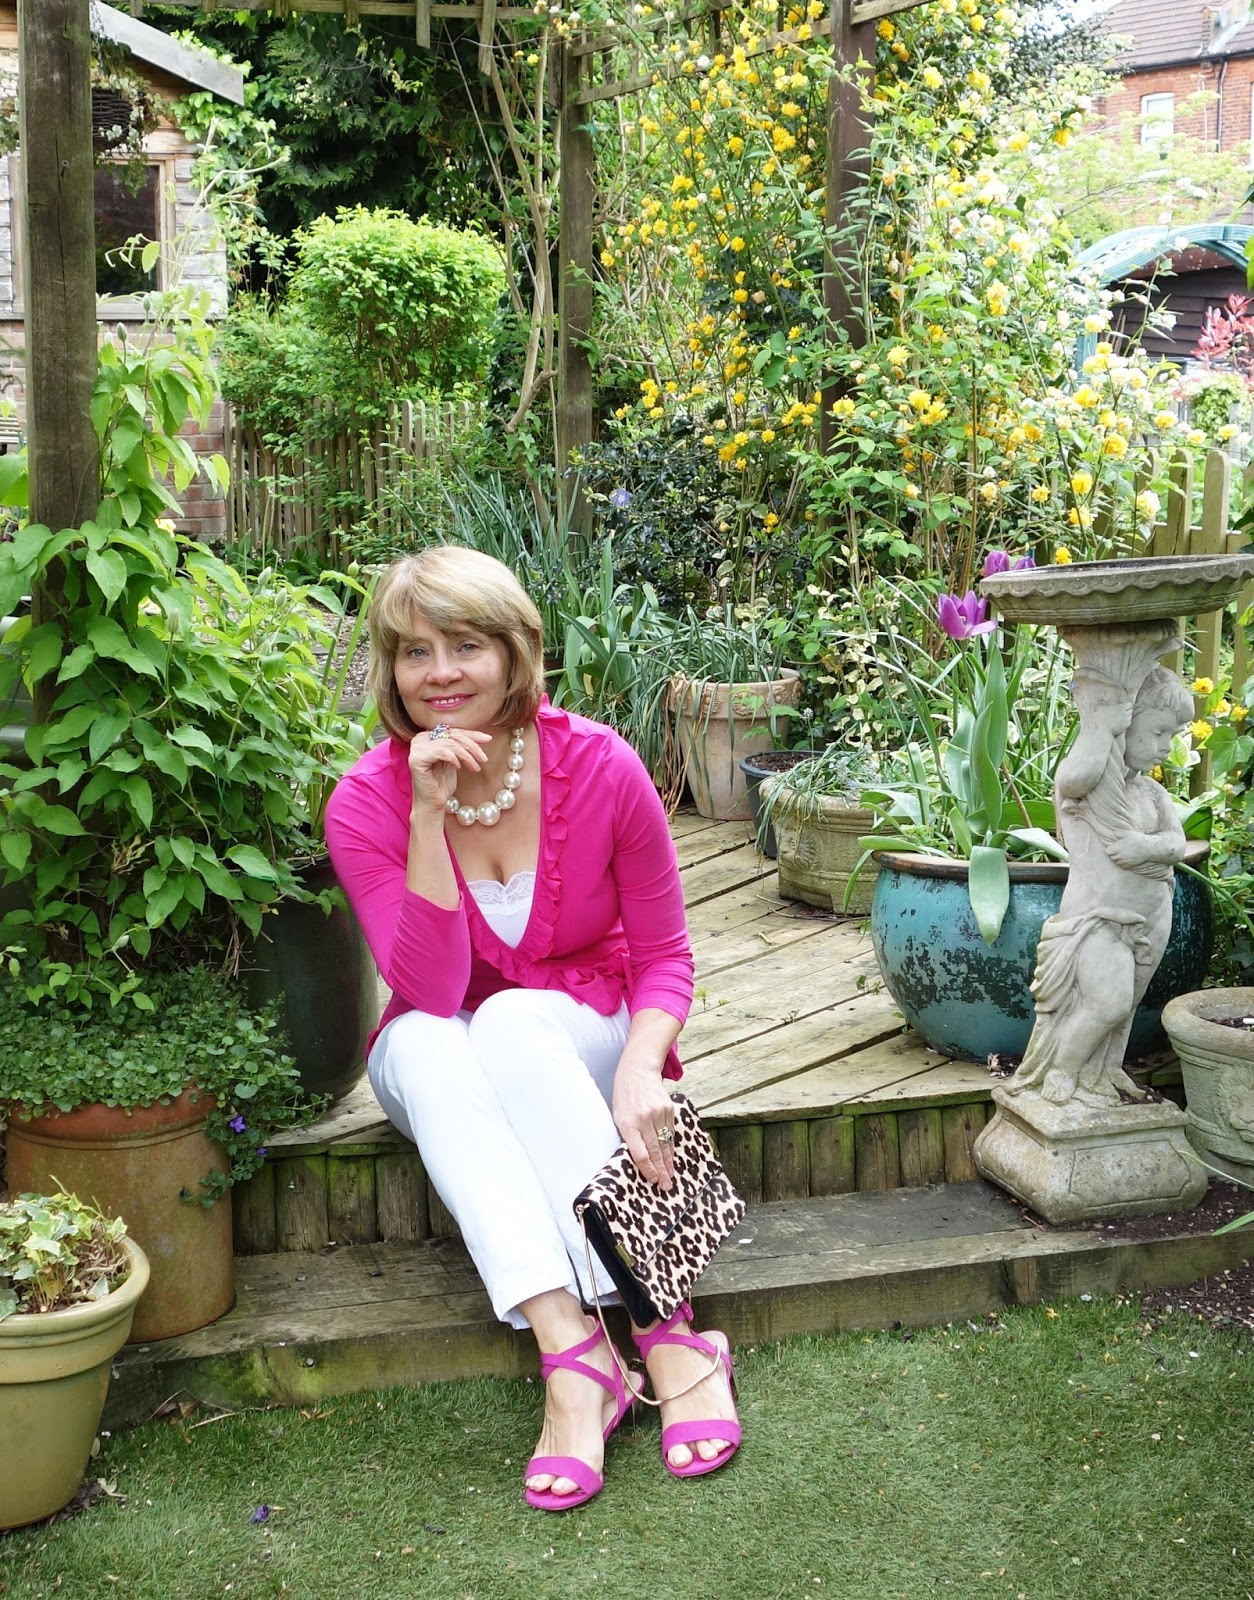 Gail Hanlon, blogger, wearing a fuchsia pink top and sandals from Topshop